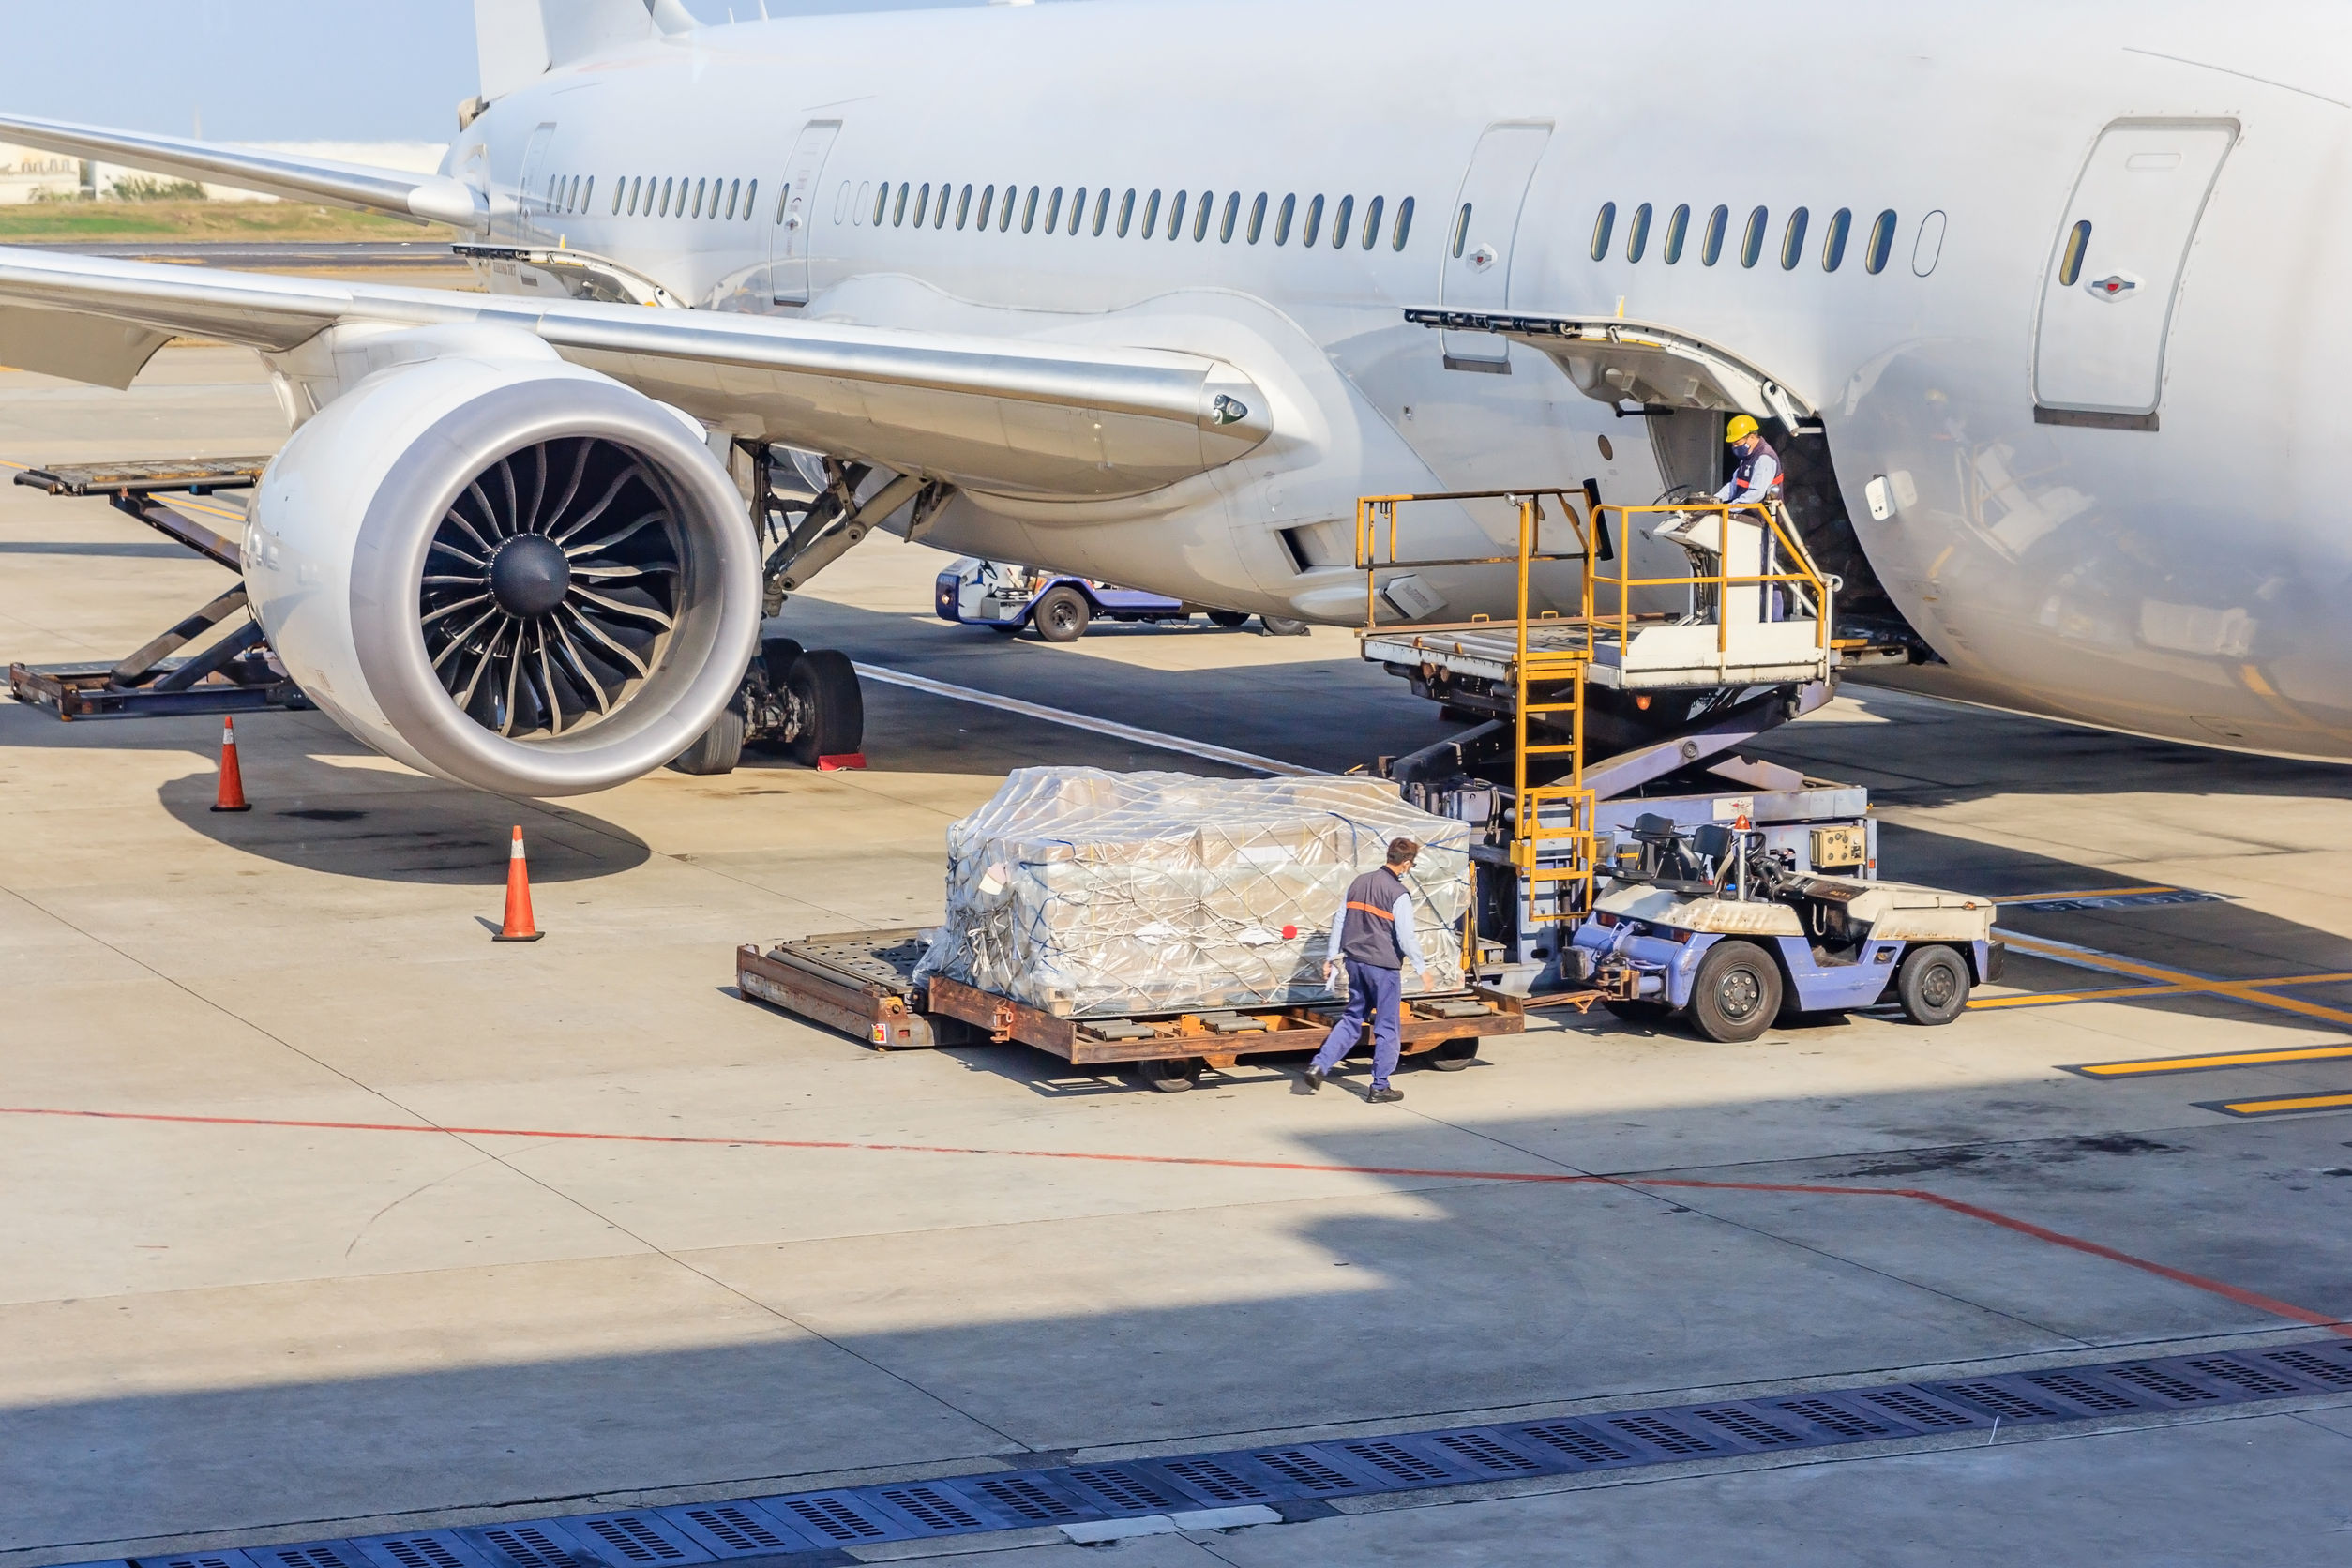 Loading cargo onto an airplane